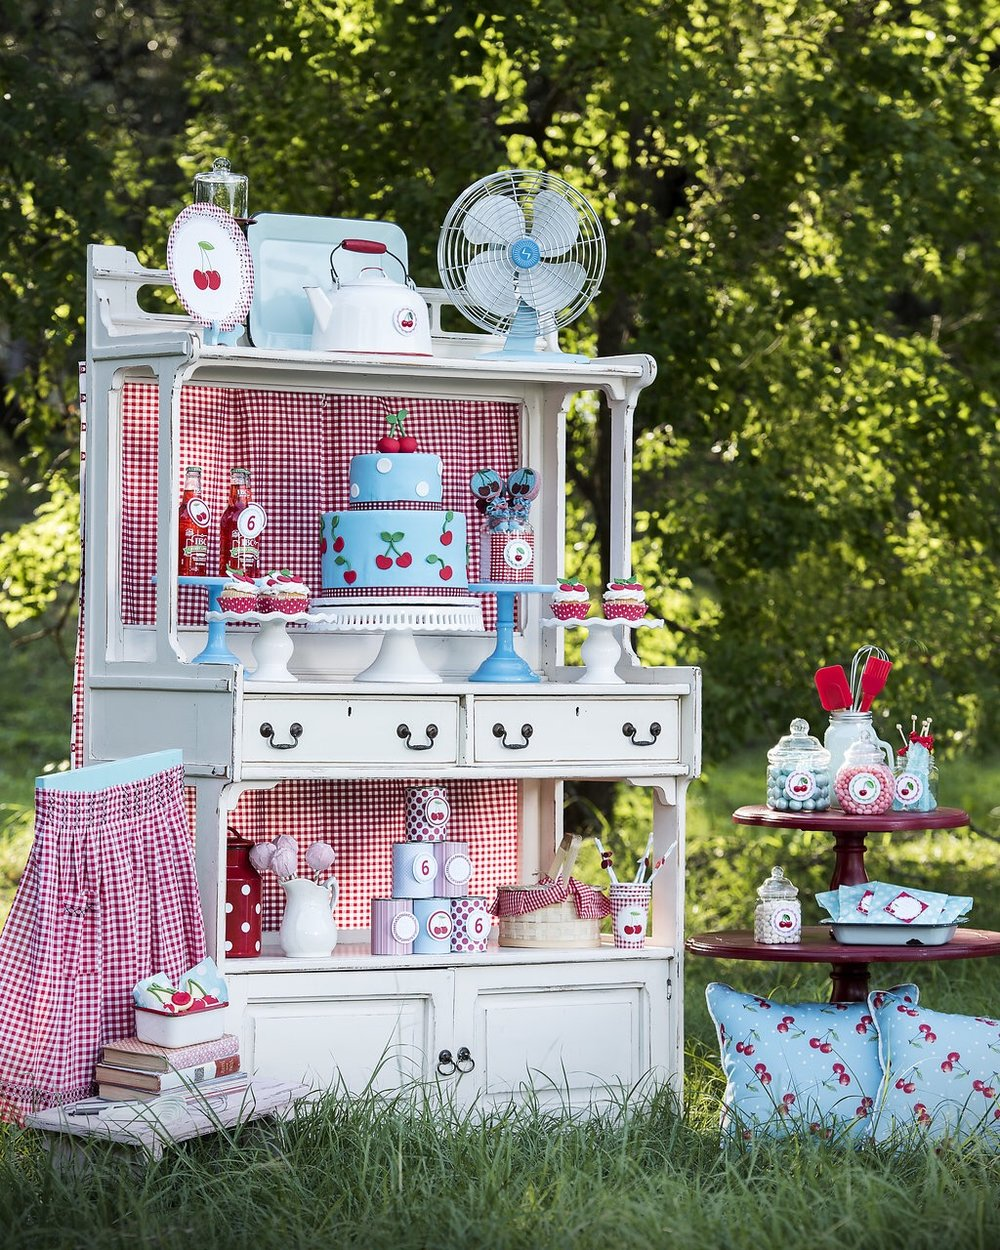 A vintage cherry on top is the cutest birthday party theme for summer birthdays for girls. Come on over to Mint Event Design to see all the birthday party ideas www.minteventdesign.com #summerparties #partyideas #kidspartyideas #partyplanning #birthdaypartyideas #kidsparty #cherryparty